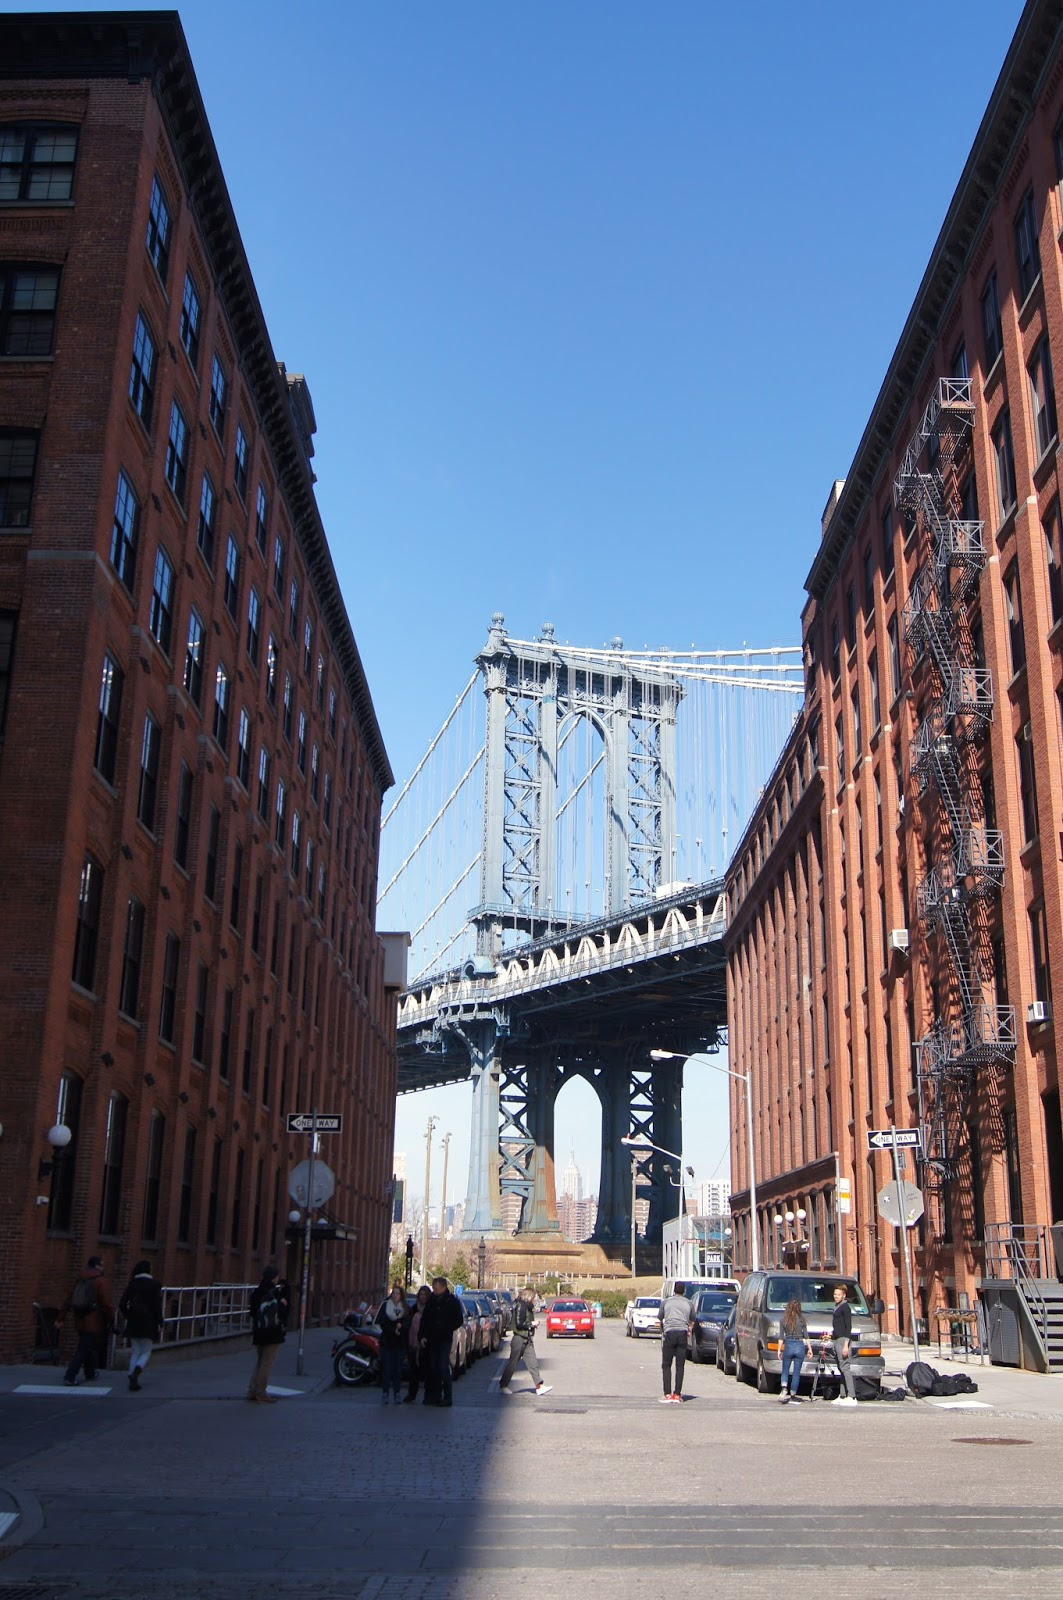 PETITS PARADIS: Dumbo & Brooklyn Bridge, New York